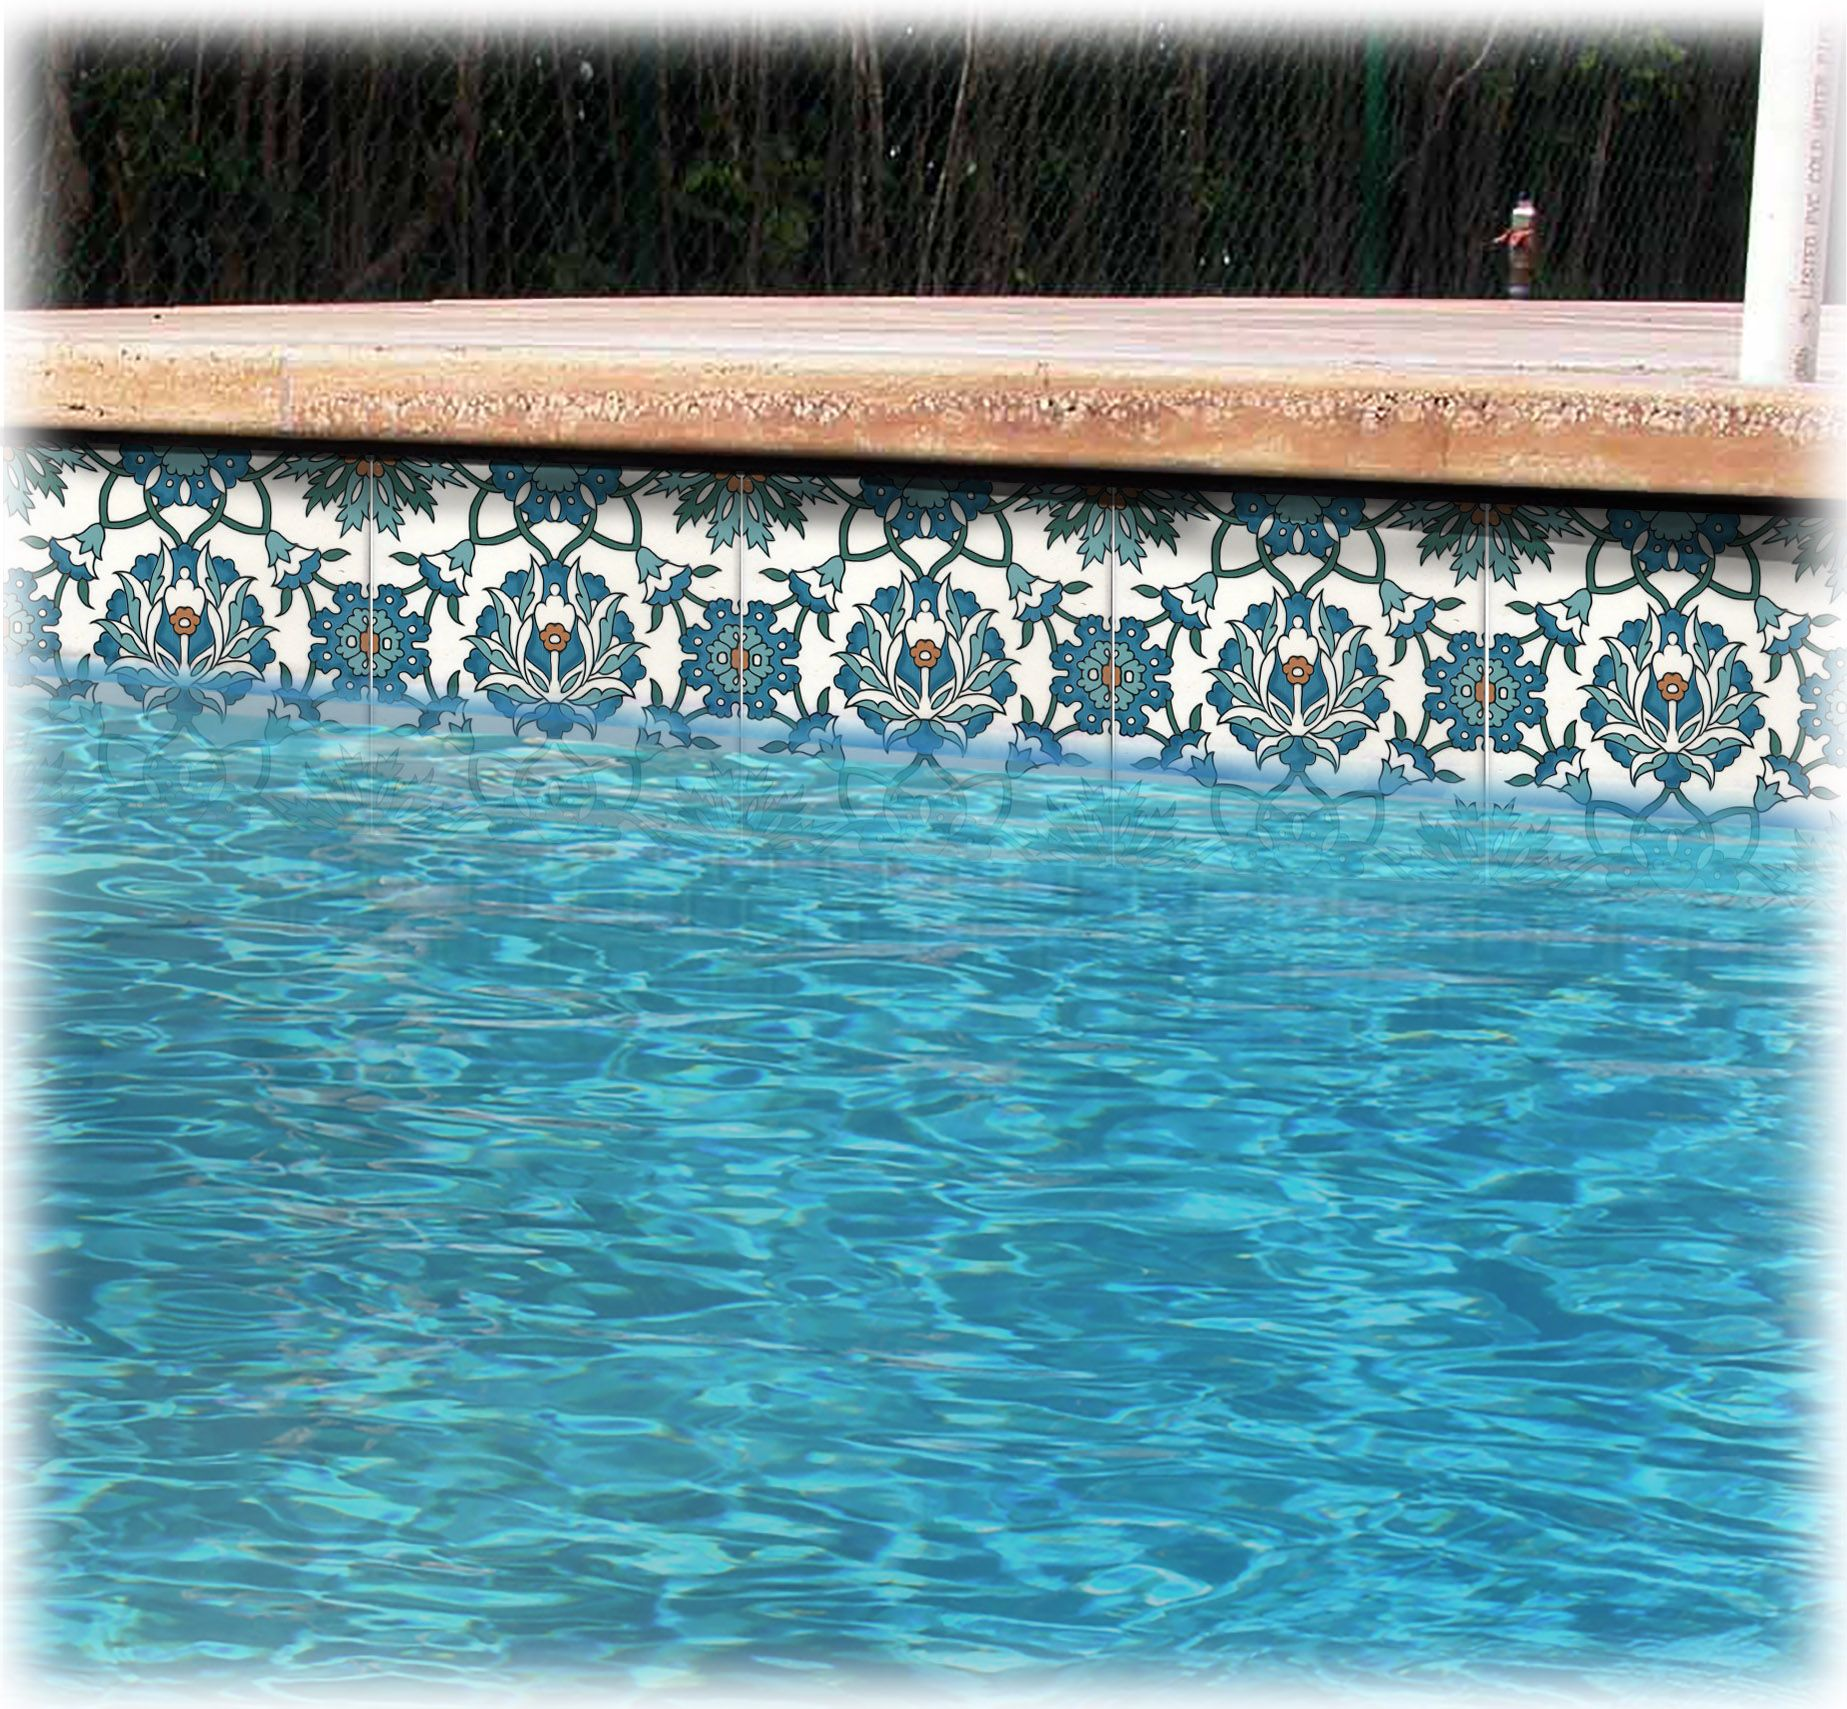 Pool Liner Designs For Inground Pools swimming pool maintenance replacement liners in ground replacement liners liner patterns in ground vinyl liners Lori Swimming Pool Tile Design Liner Small Size